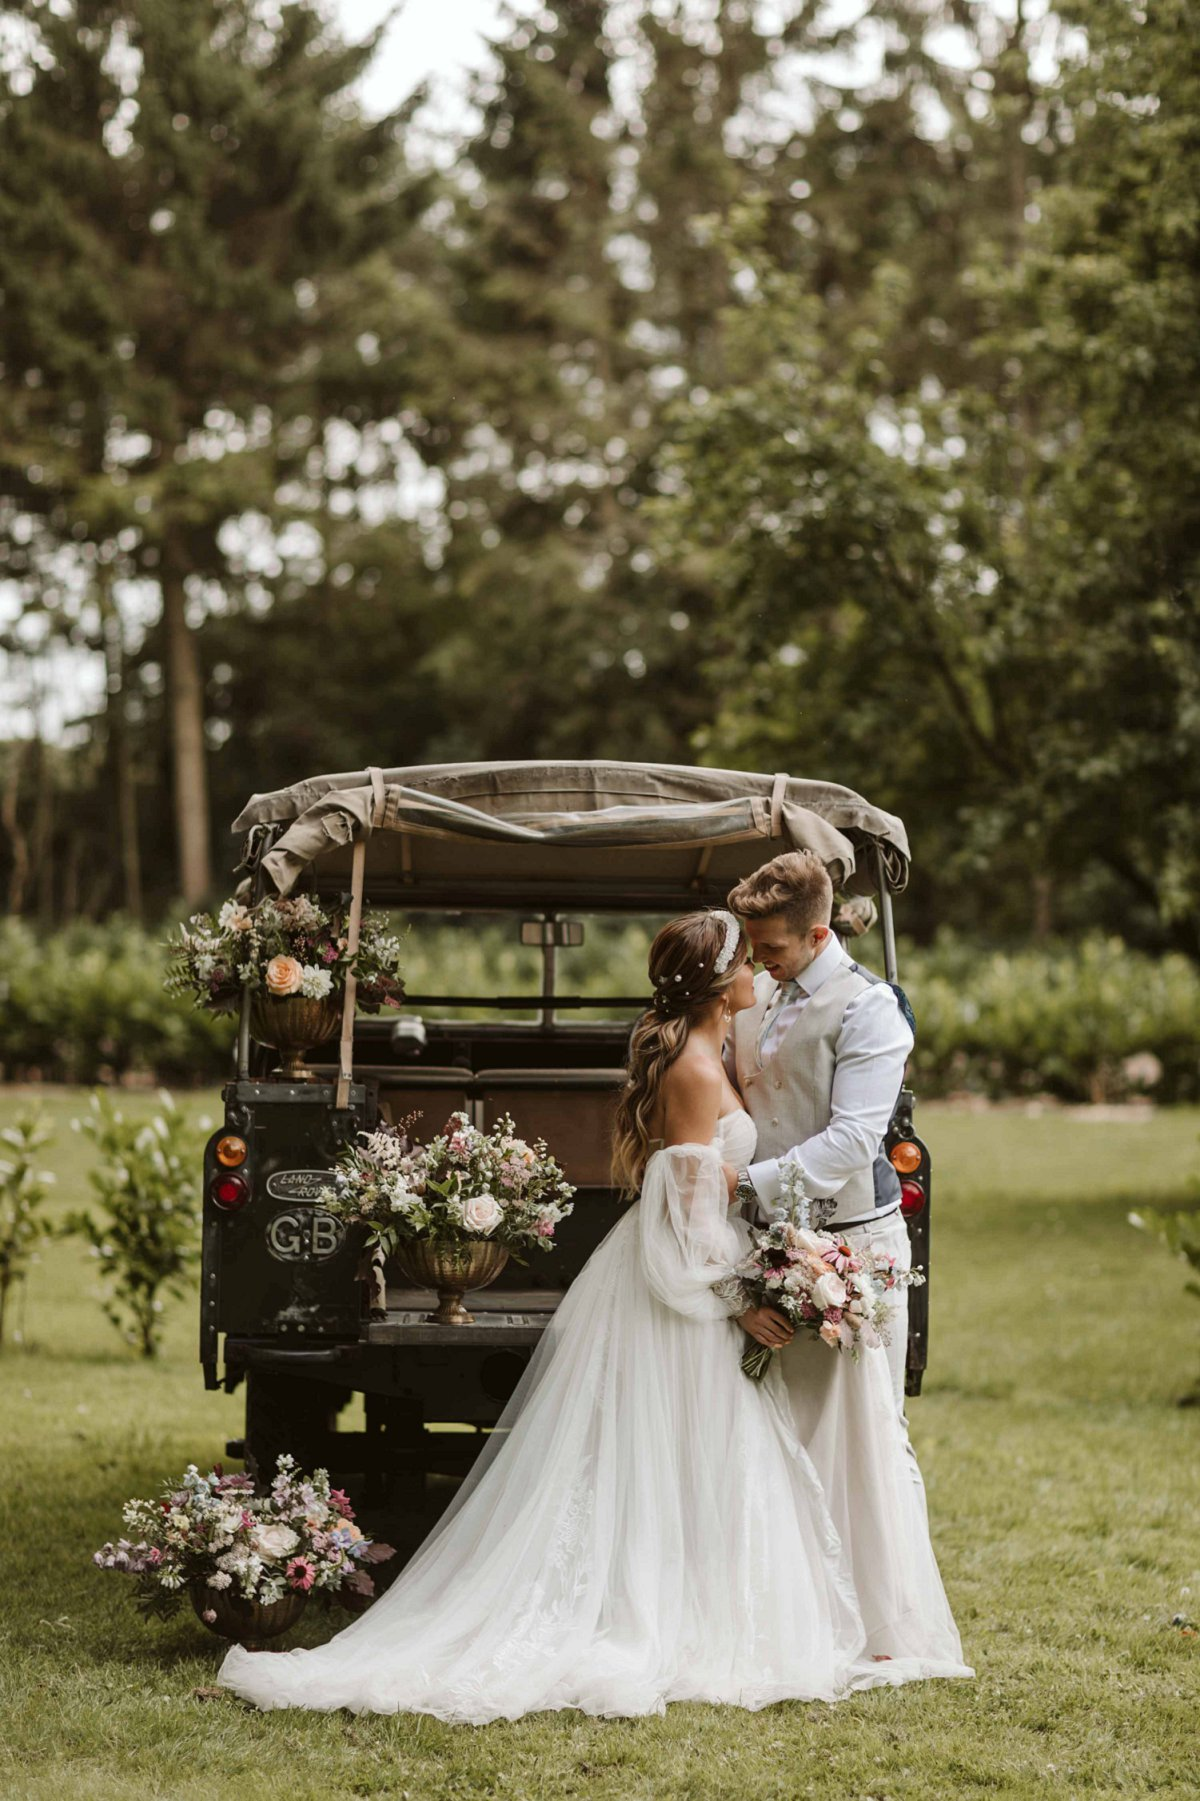 An Eclectic & Elegant Wedding Inspiration Shoot at Wold View Farm (c) Freya Raby Photography (20)